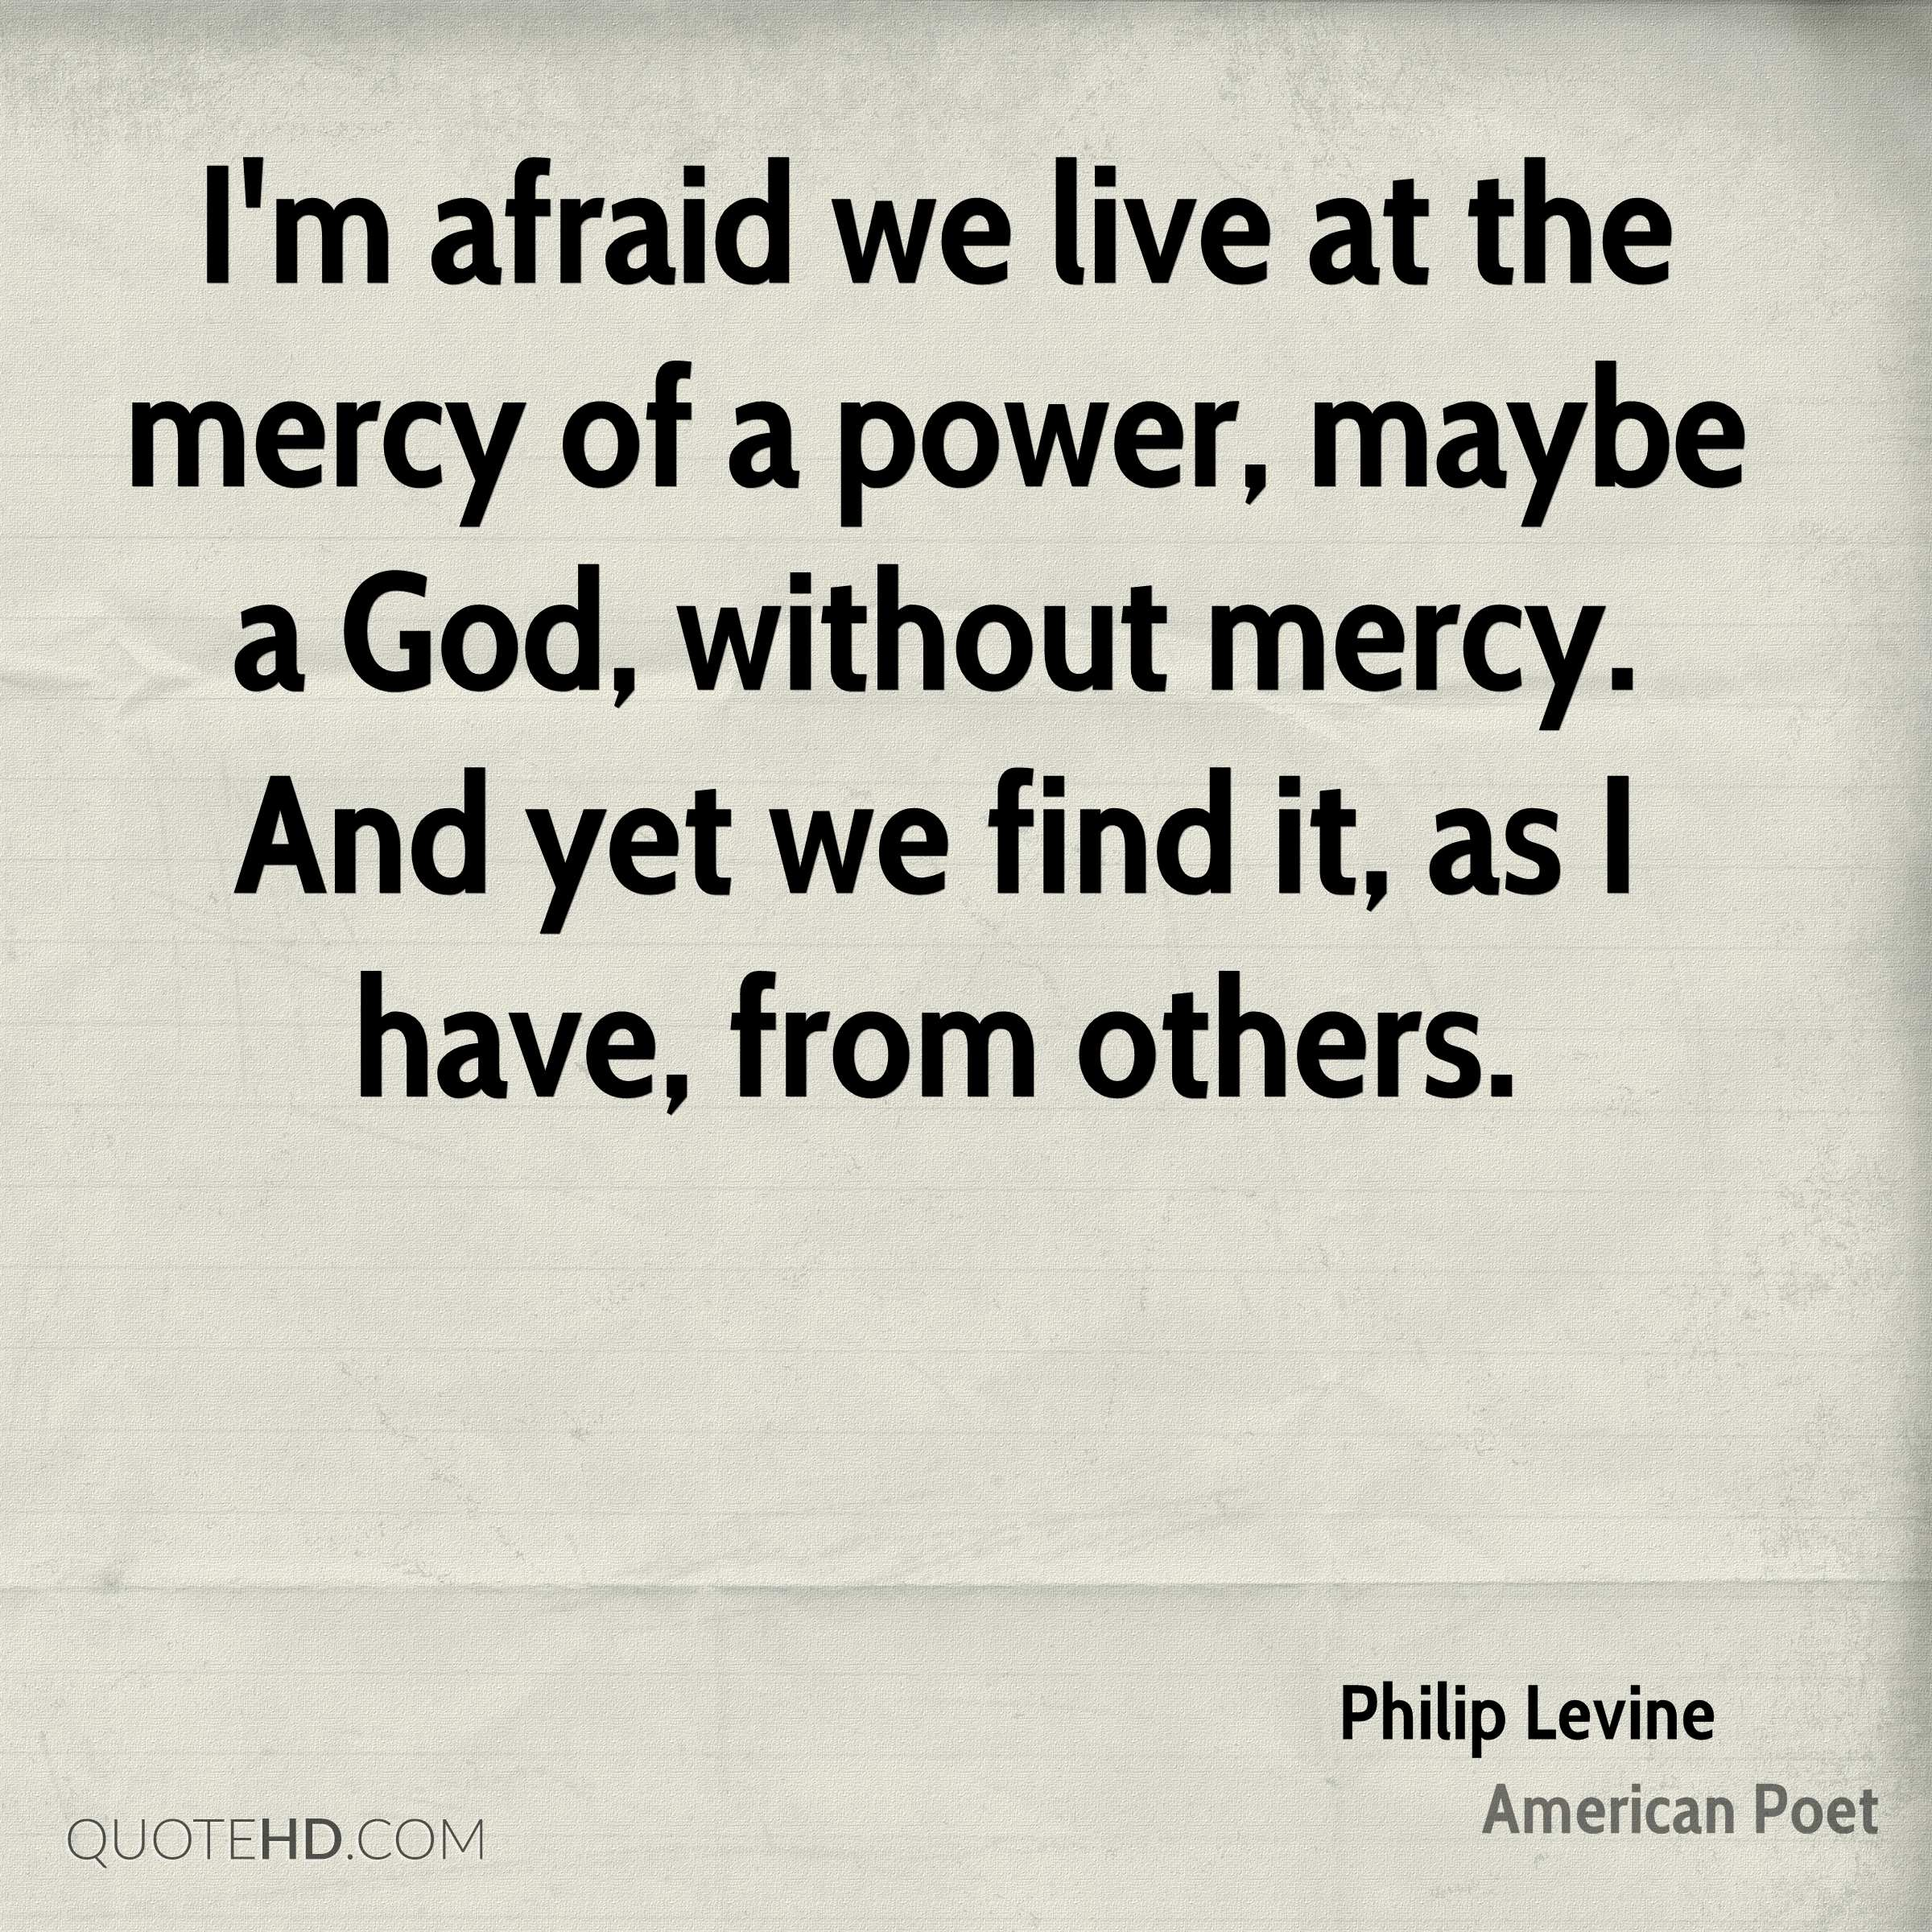 I'm afraid we live at the mercy of a power, maybe a God, without mercy. And yet we find it, as I have, from others.